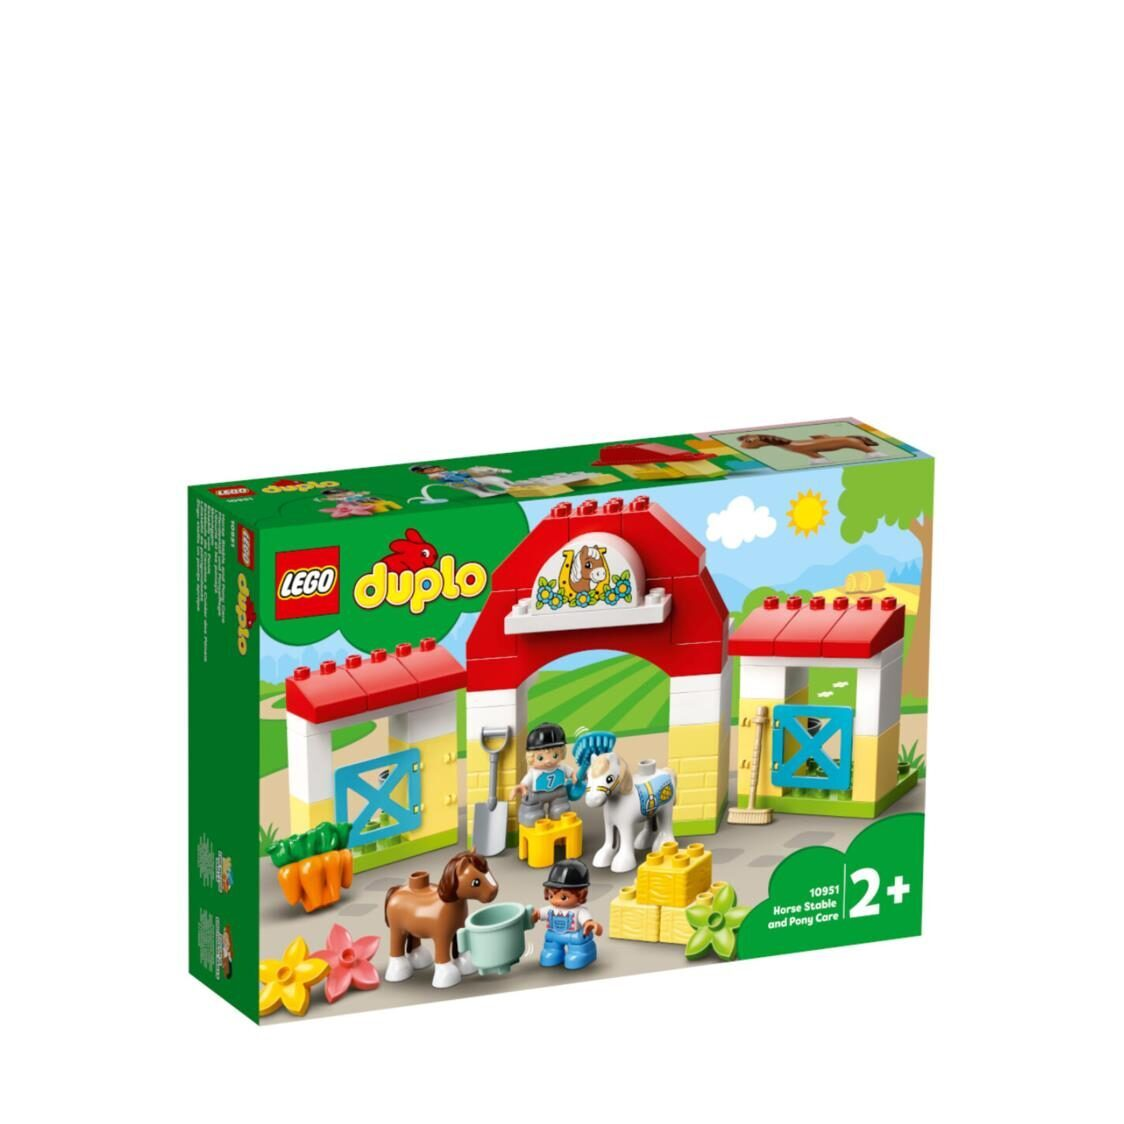 LEGO DUPLO Town - Horse Stable and Pony Care 10951